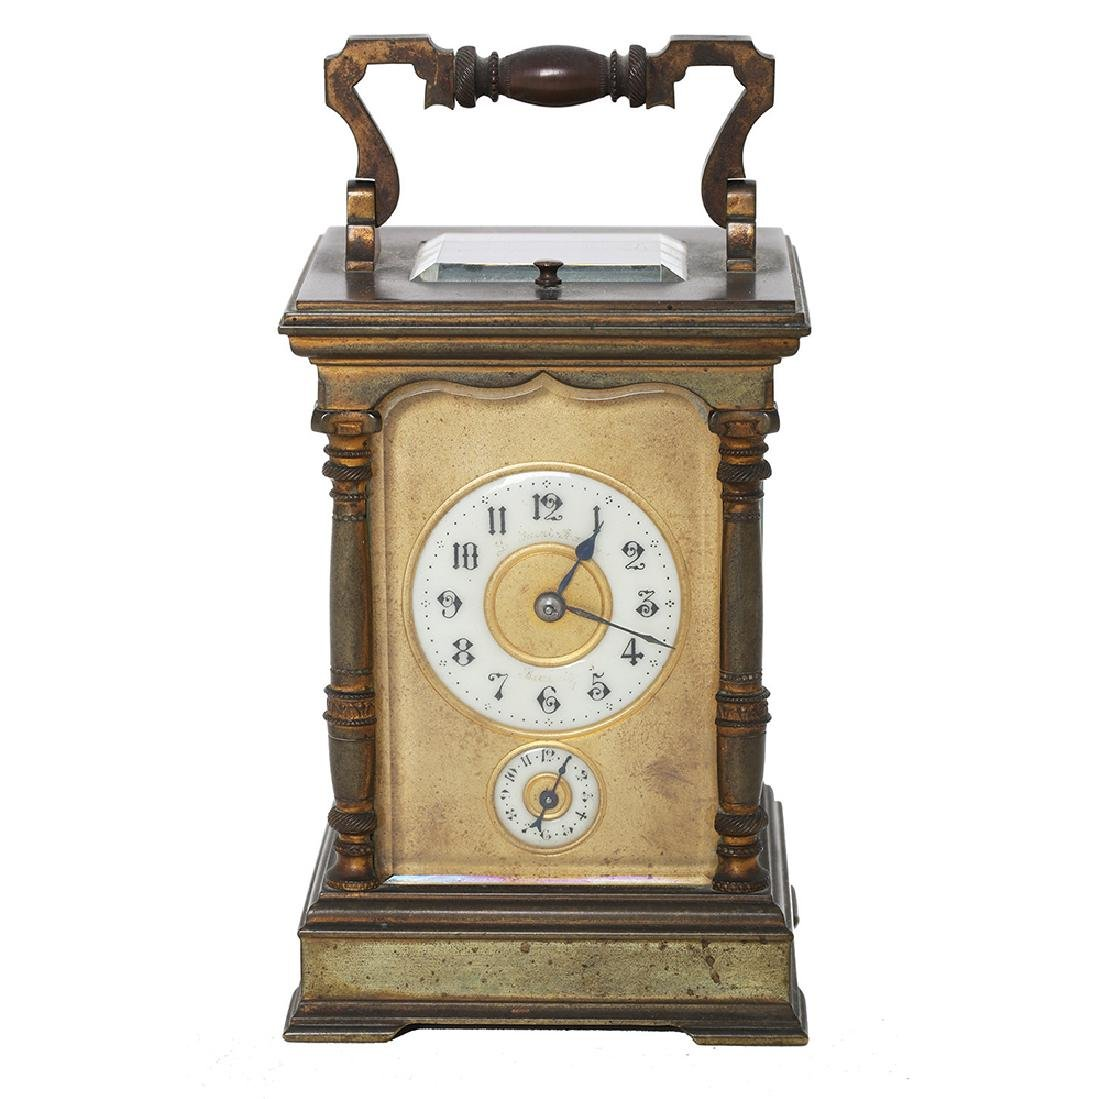 A CARRIAGE/ ALARM/ REPEATER CLOCK